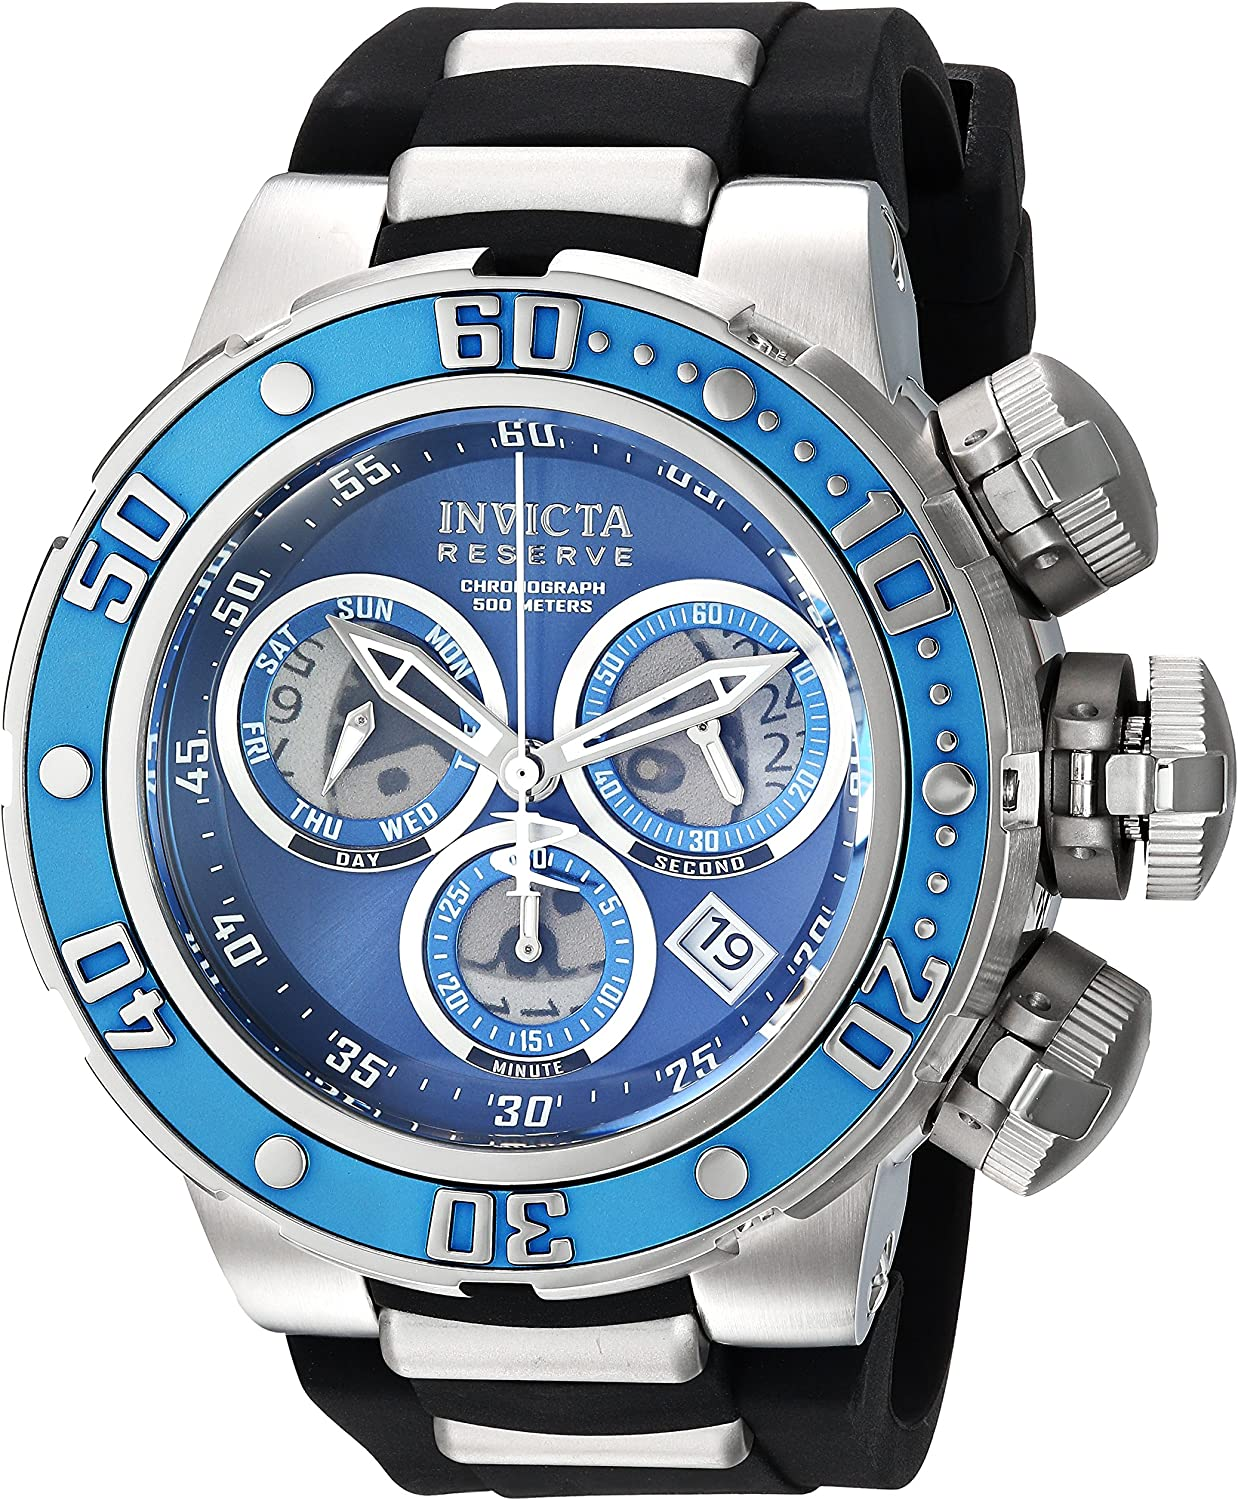 Invicta Men s Reserve Stainless Steel Quartz Watch with Silicone Strap, Black, 30 Model 21643